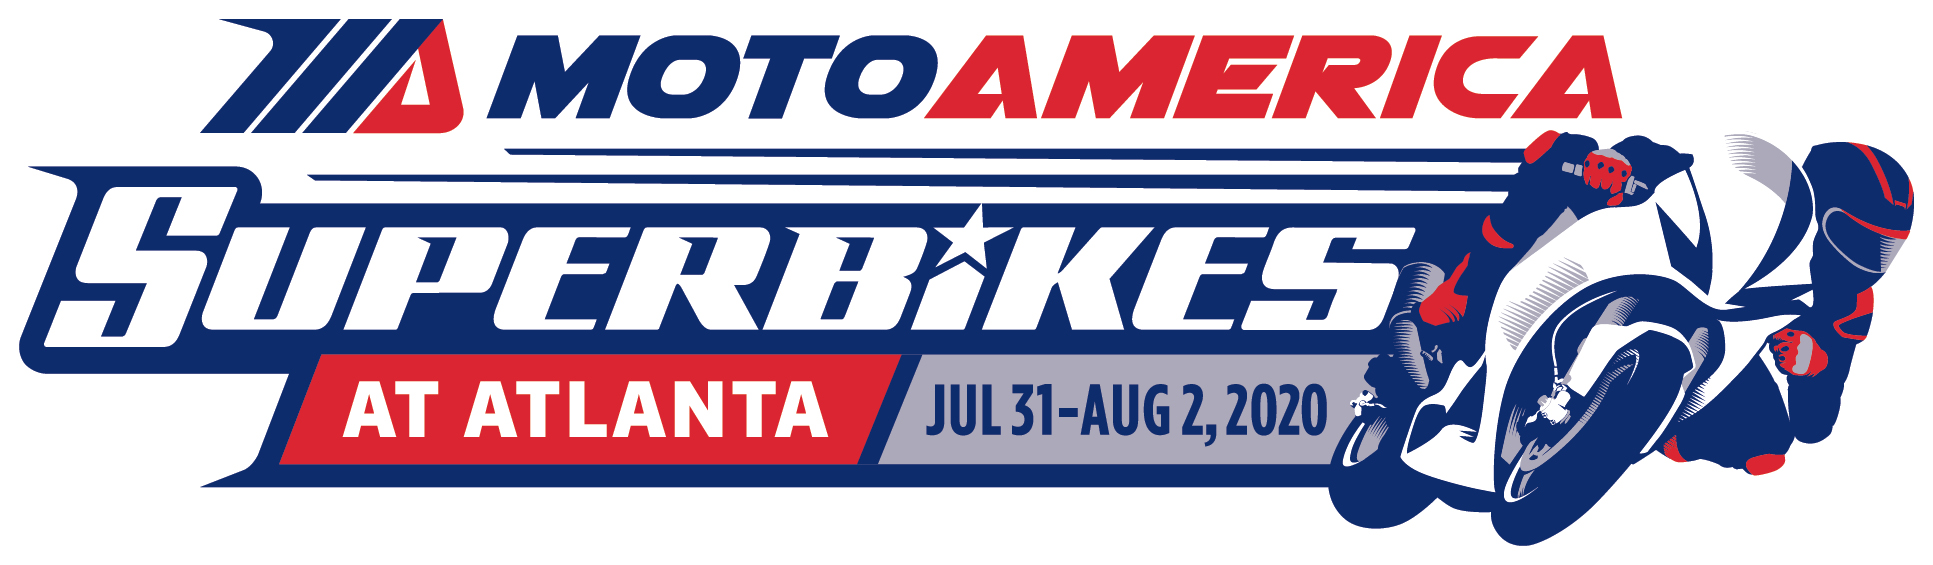 MotoAmerica Superbikes at Atlanta - July 31- August 2, 2020